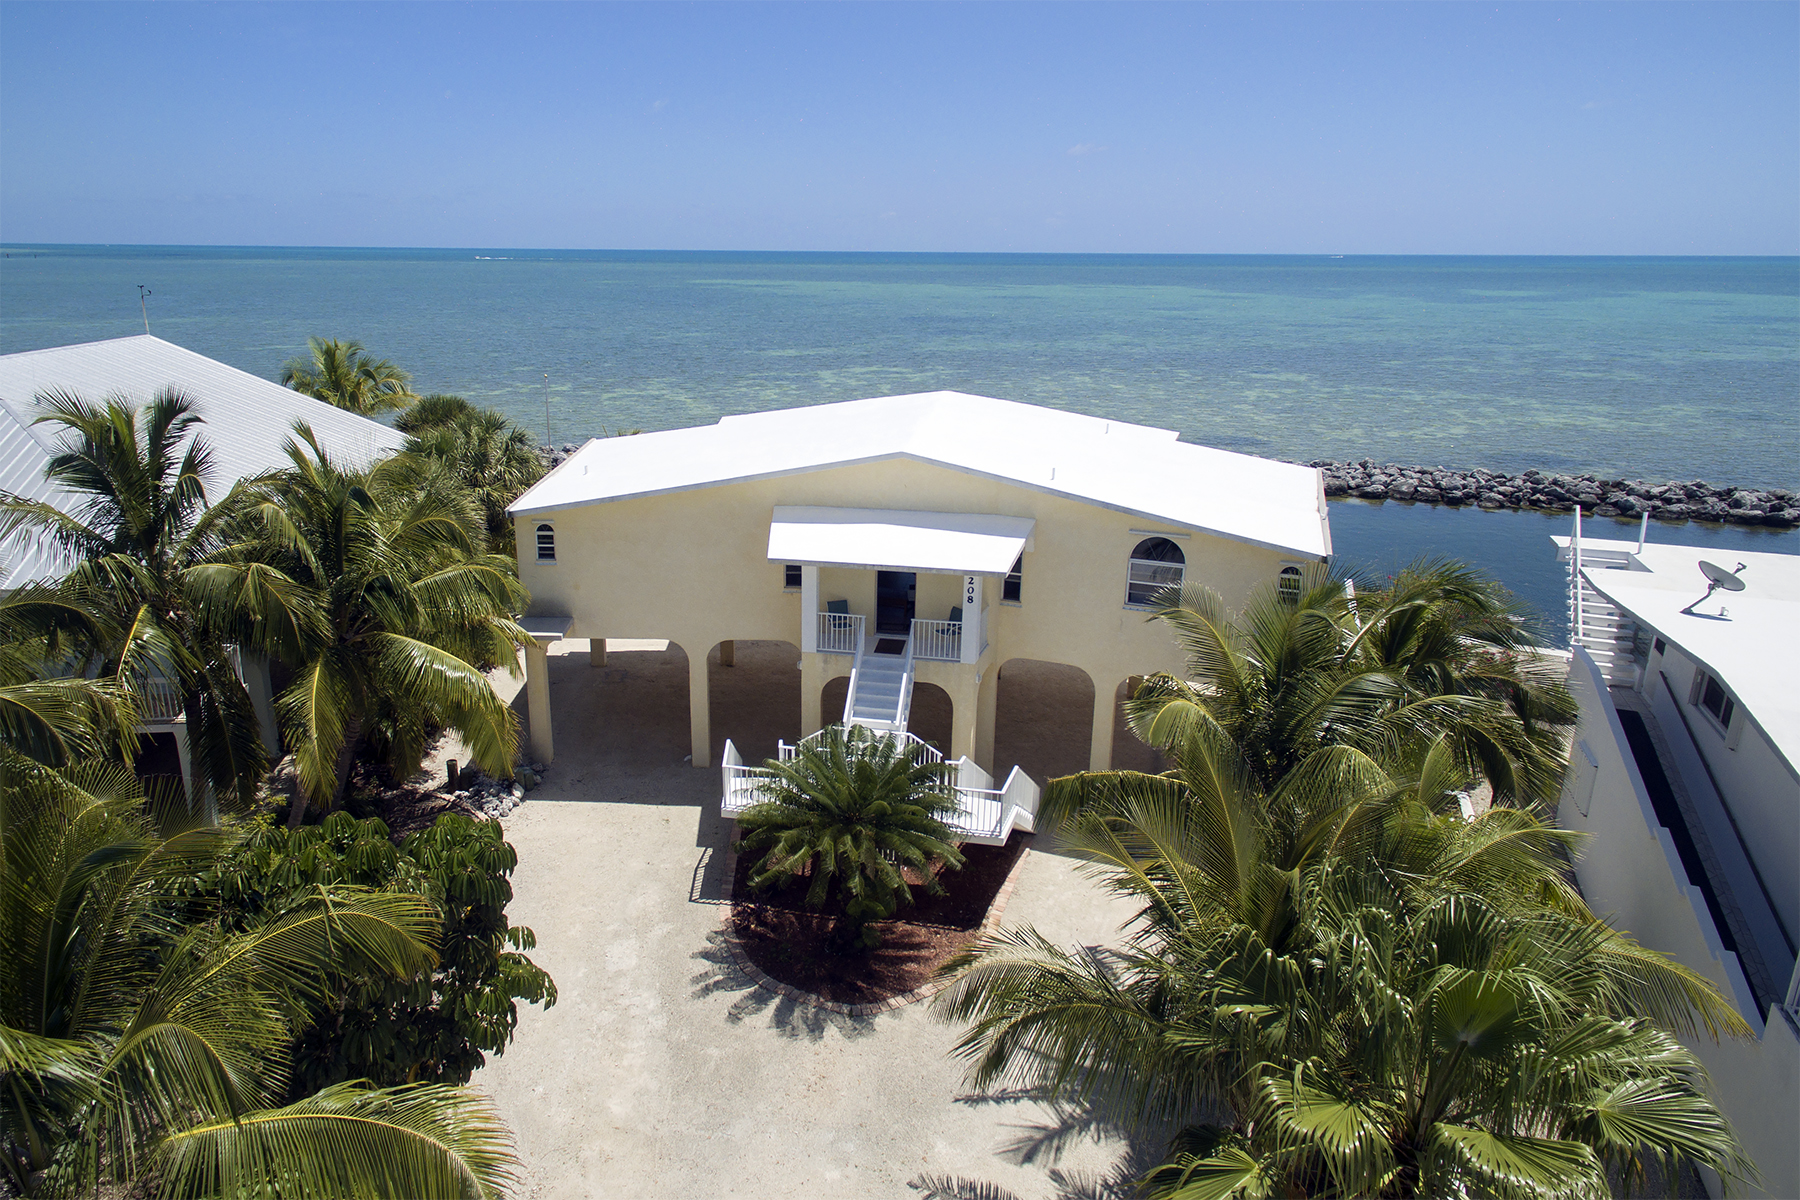 Casa Unifamiliar por un Venta en Sweeping Ocean Views 208 Plantation Shores Drive Plantation Key, Florida 33070 Estados Unidos